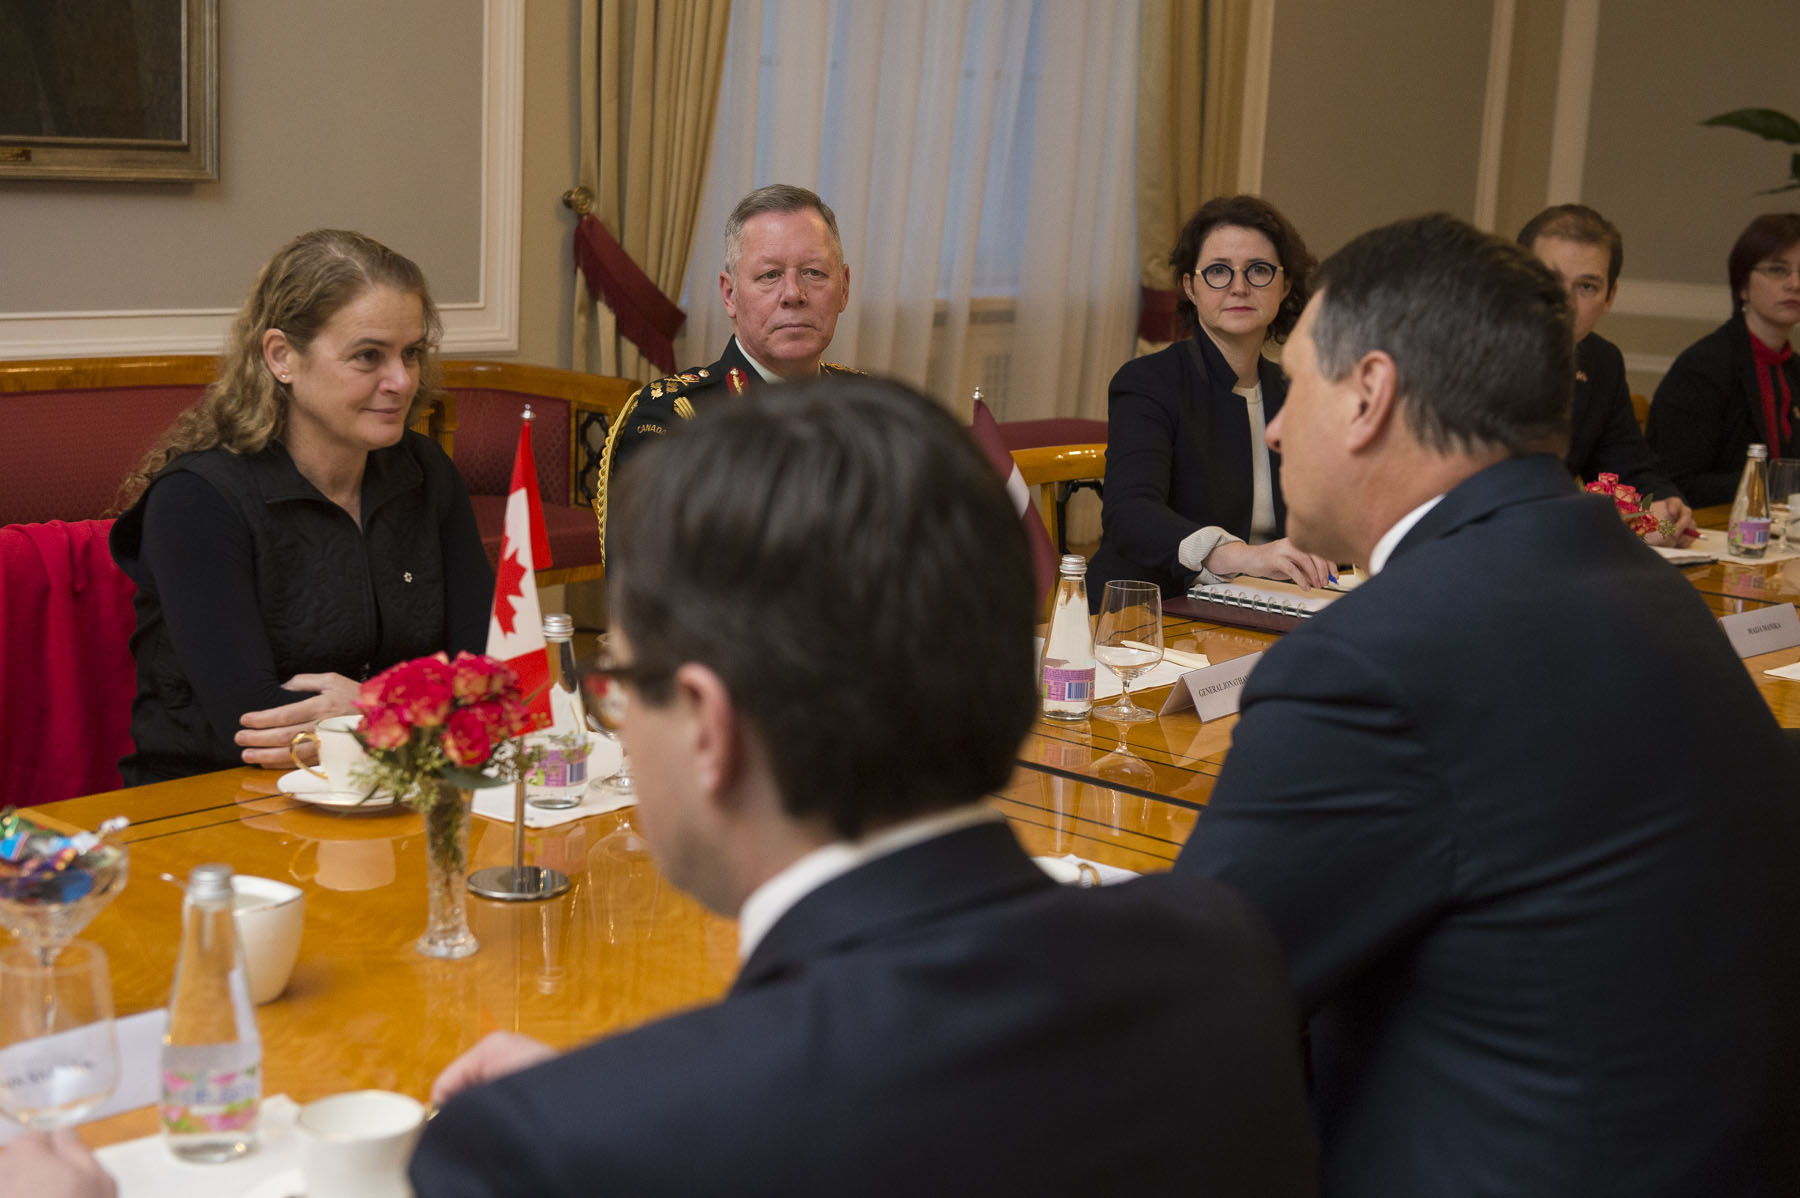 The Governor General started her day by meeting with His Excellency Raimonds Vejonis, President of the Republic of Latvia to discuss Canada-Latvia bilateral relations and to highlight areas for further strengthening of co-operation between both countries.